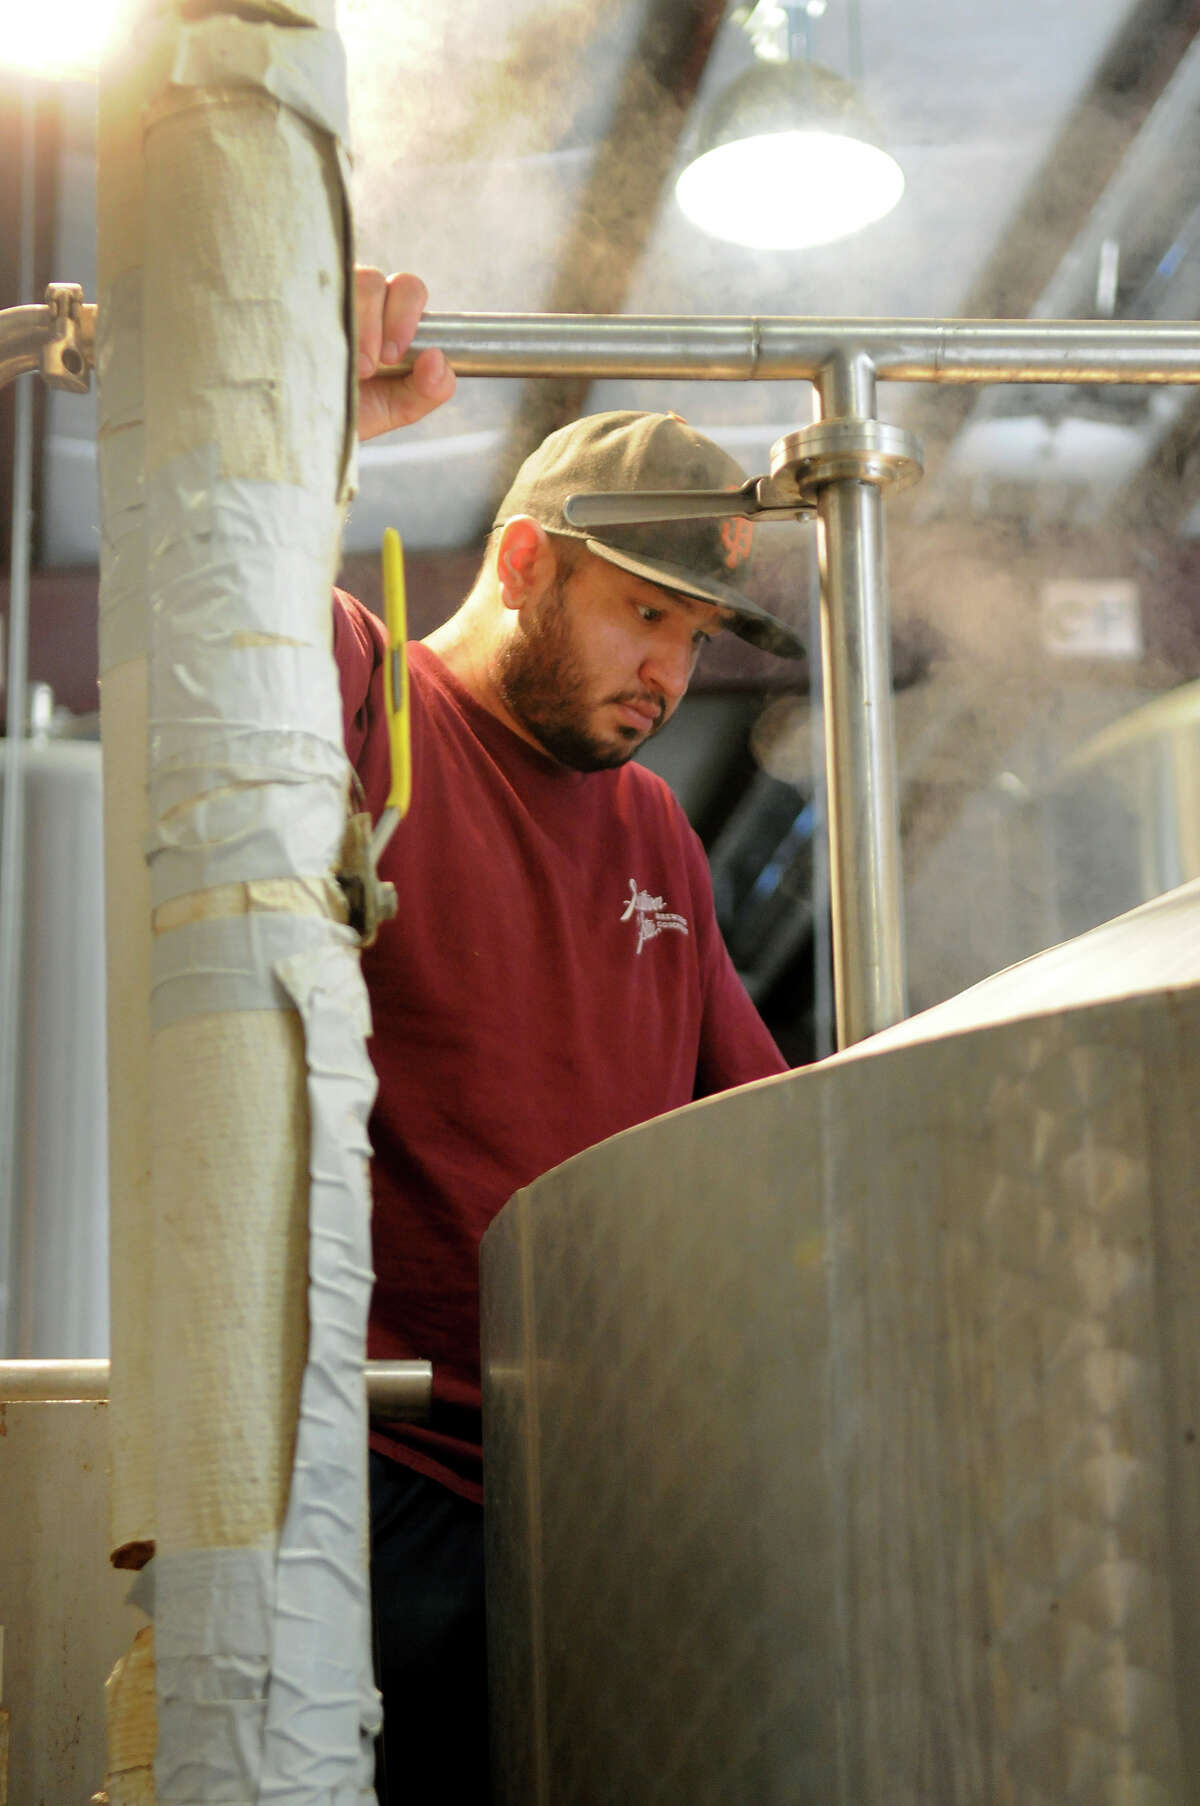 Jason Gutierrez monitors a brew kettle during a beer cooking session at the Southern Star Brewery.